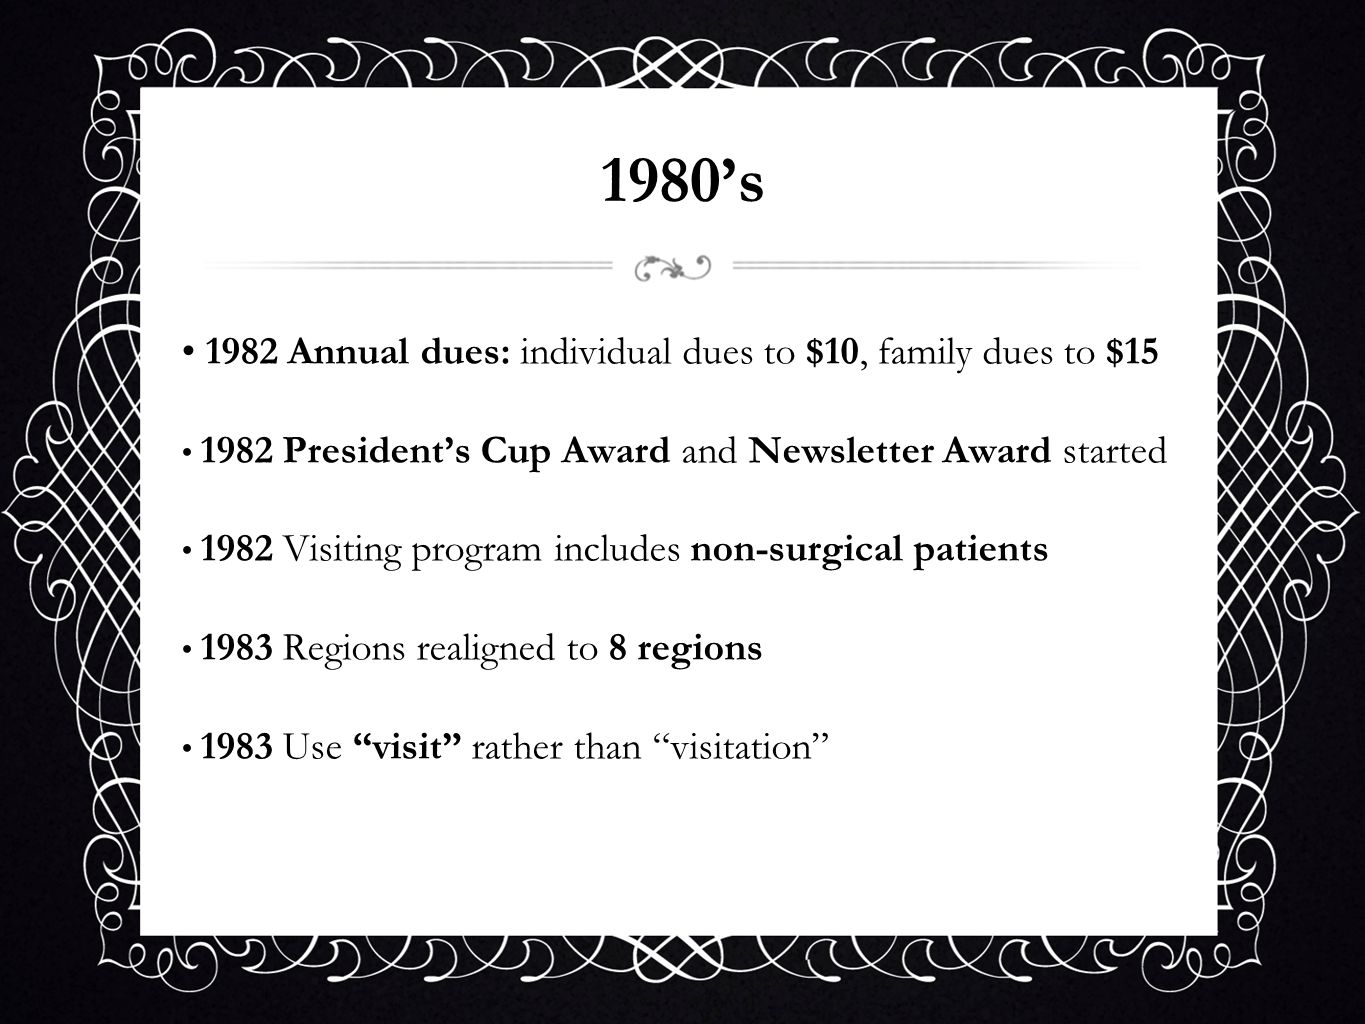 1980's 1982 Annual dues: individual dues to $10, family dues to $15